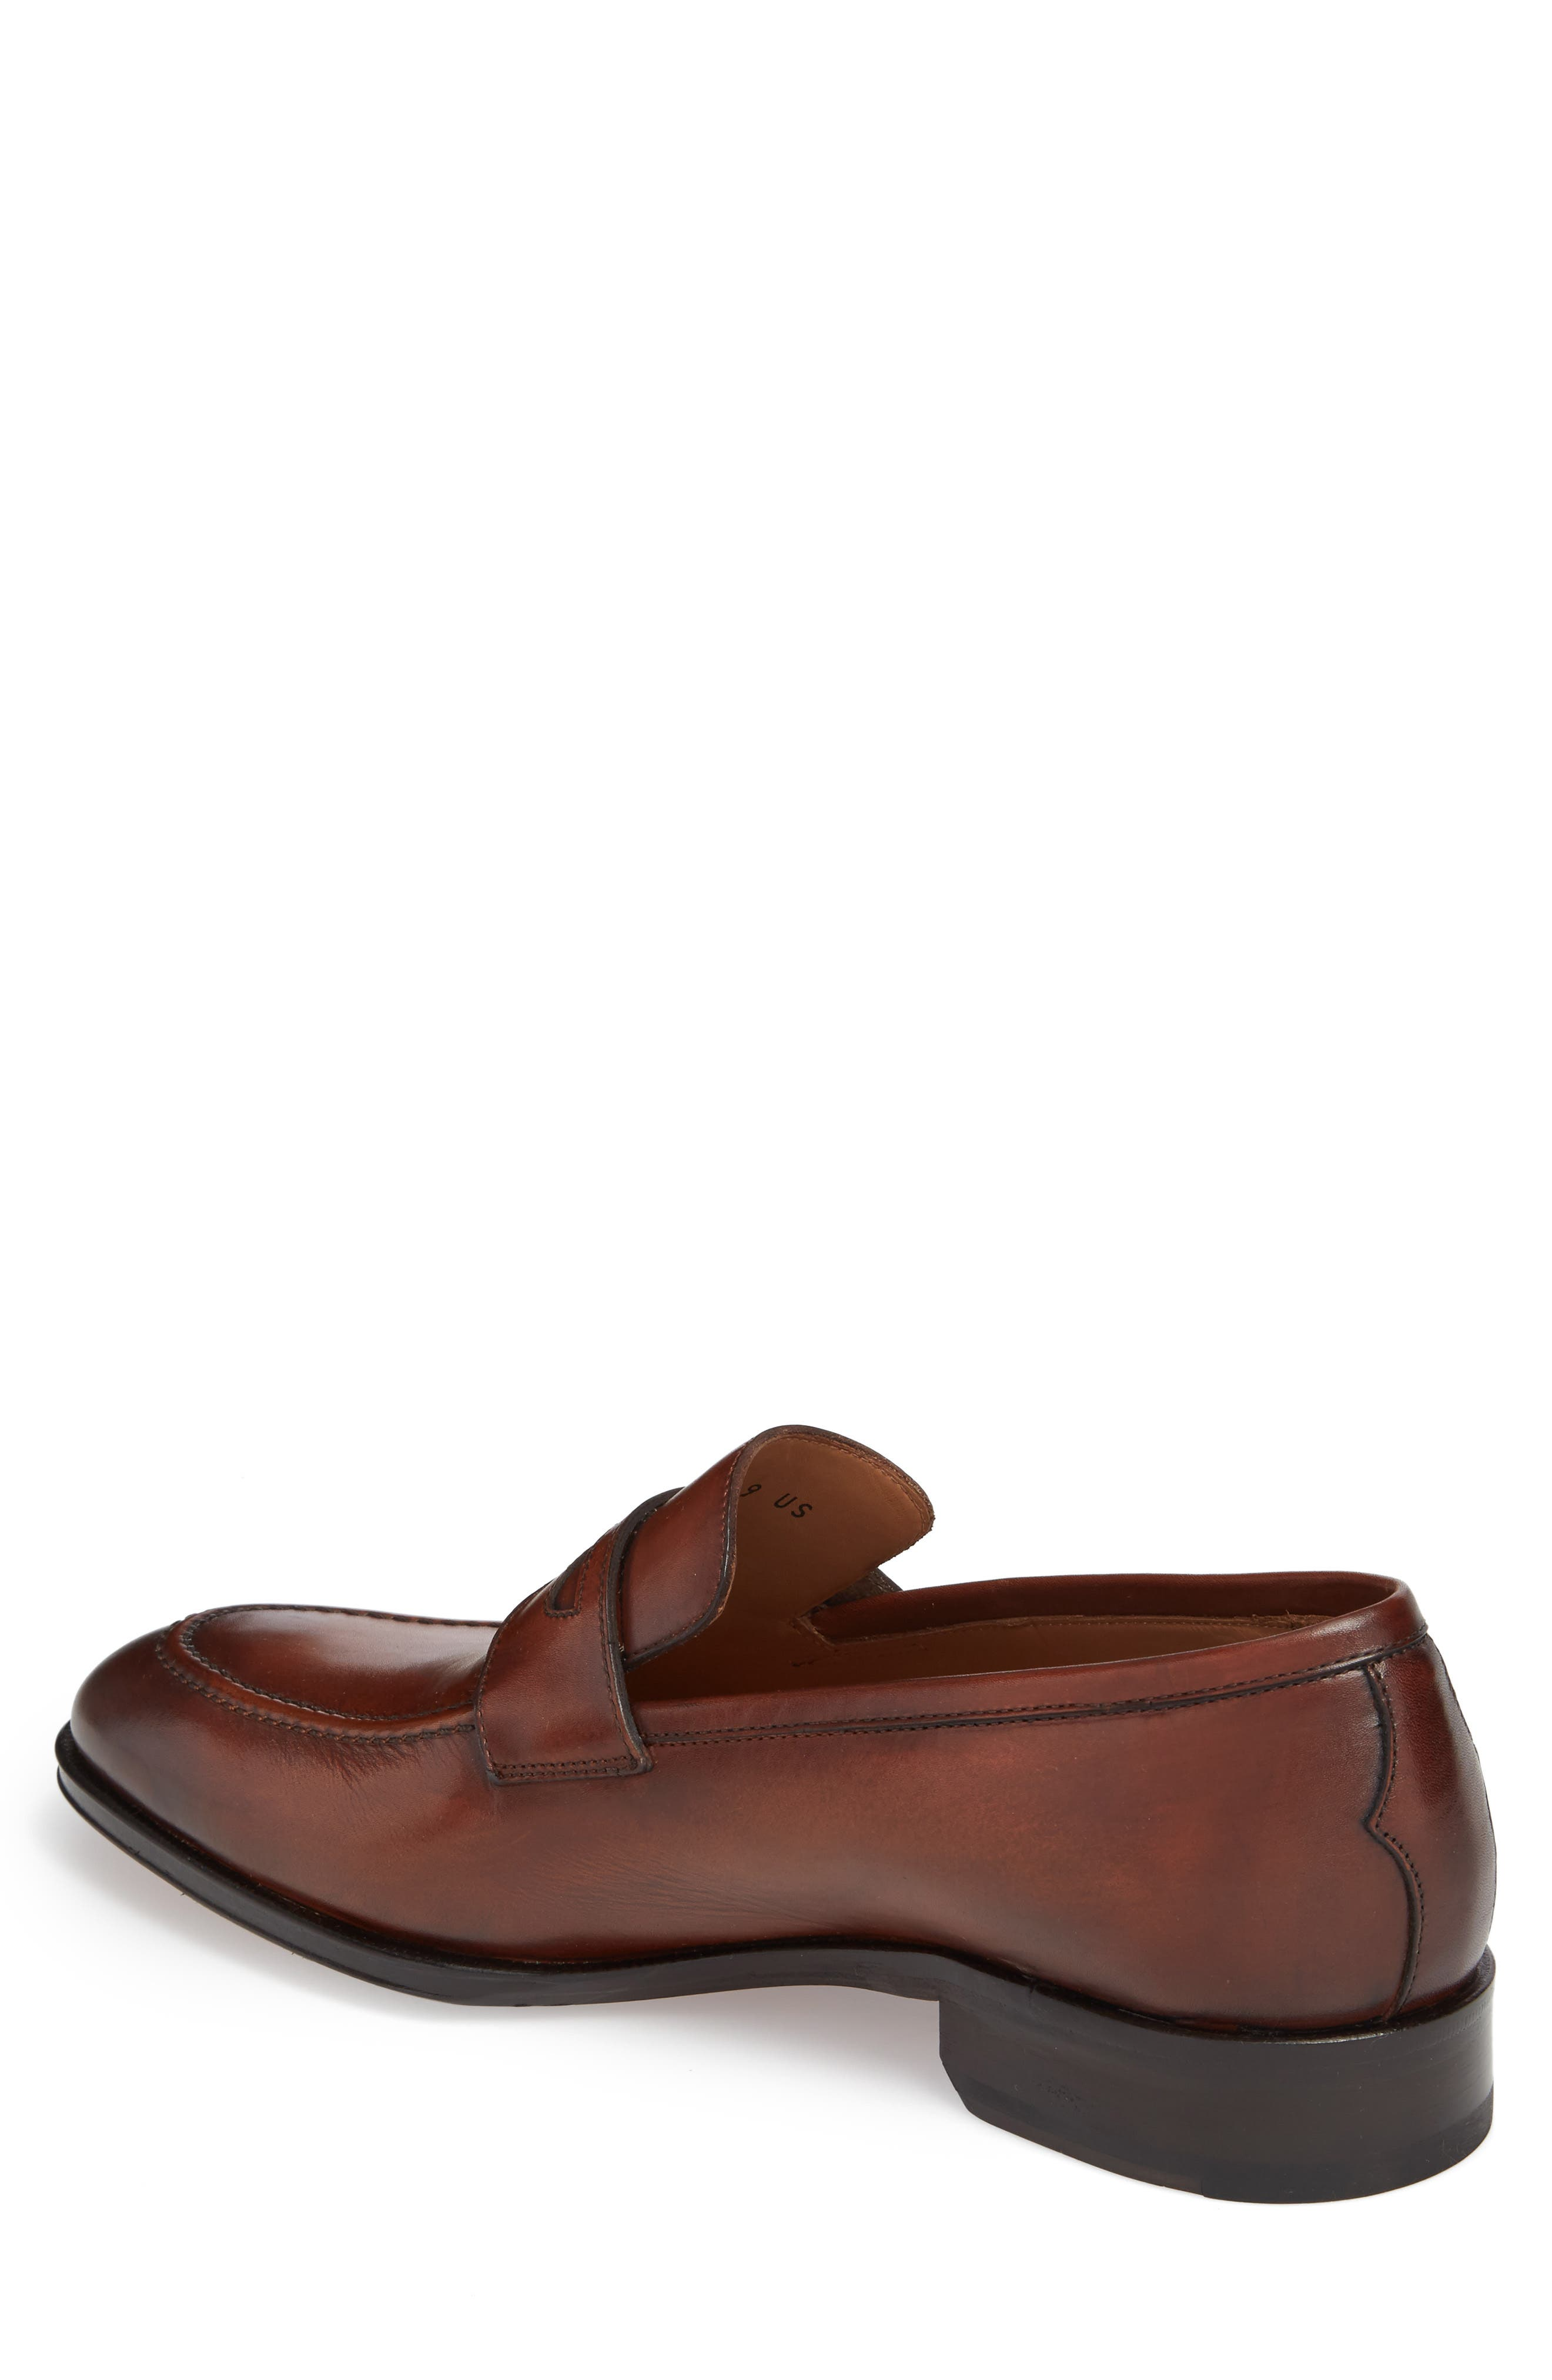 Penny Loafer,                             Alternate thumbnail 2, color,                             202